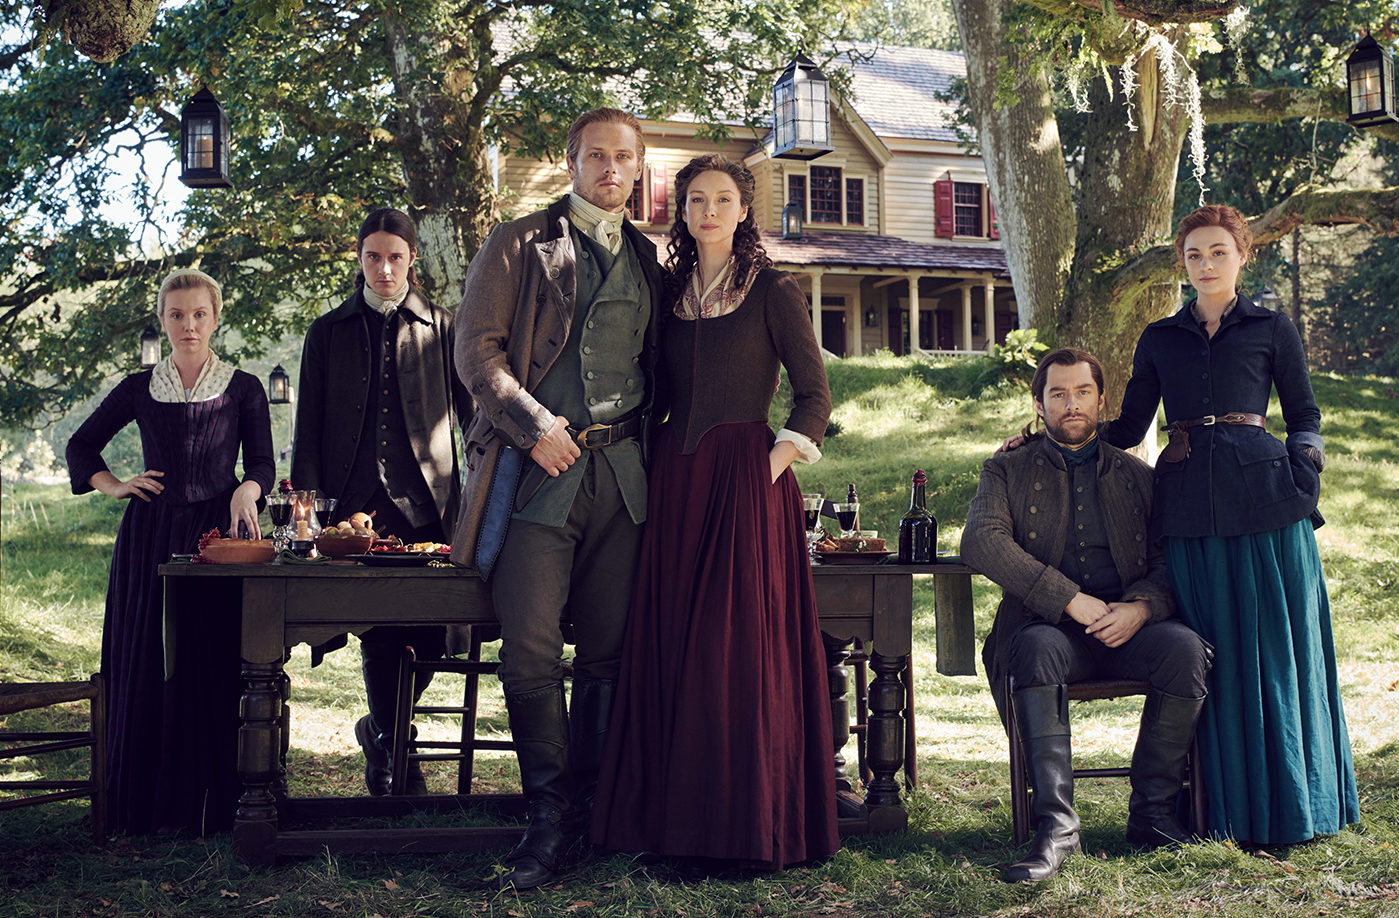 Outlander On Starz Cancelled Season 6 Release Date Canceled Renewed Tv Shows Tv Series Finale